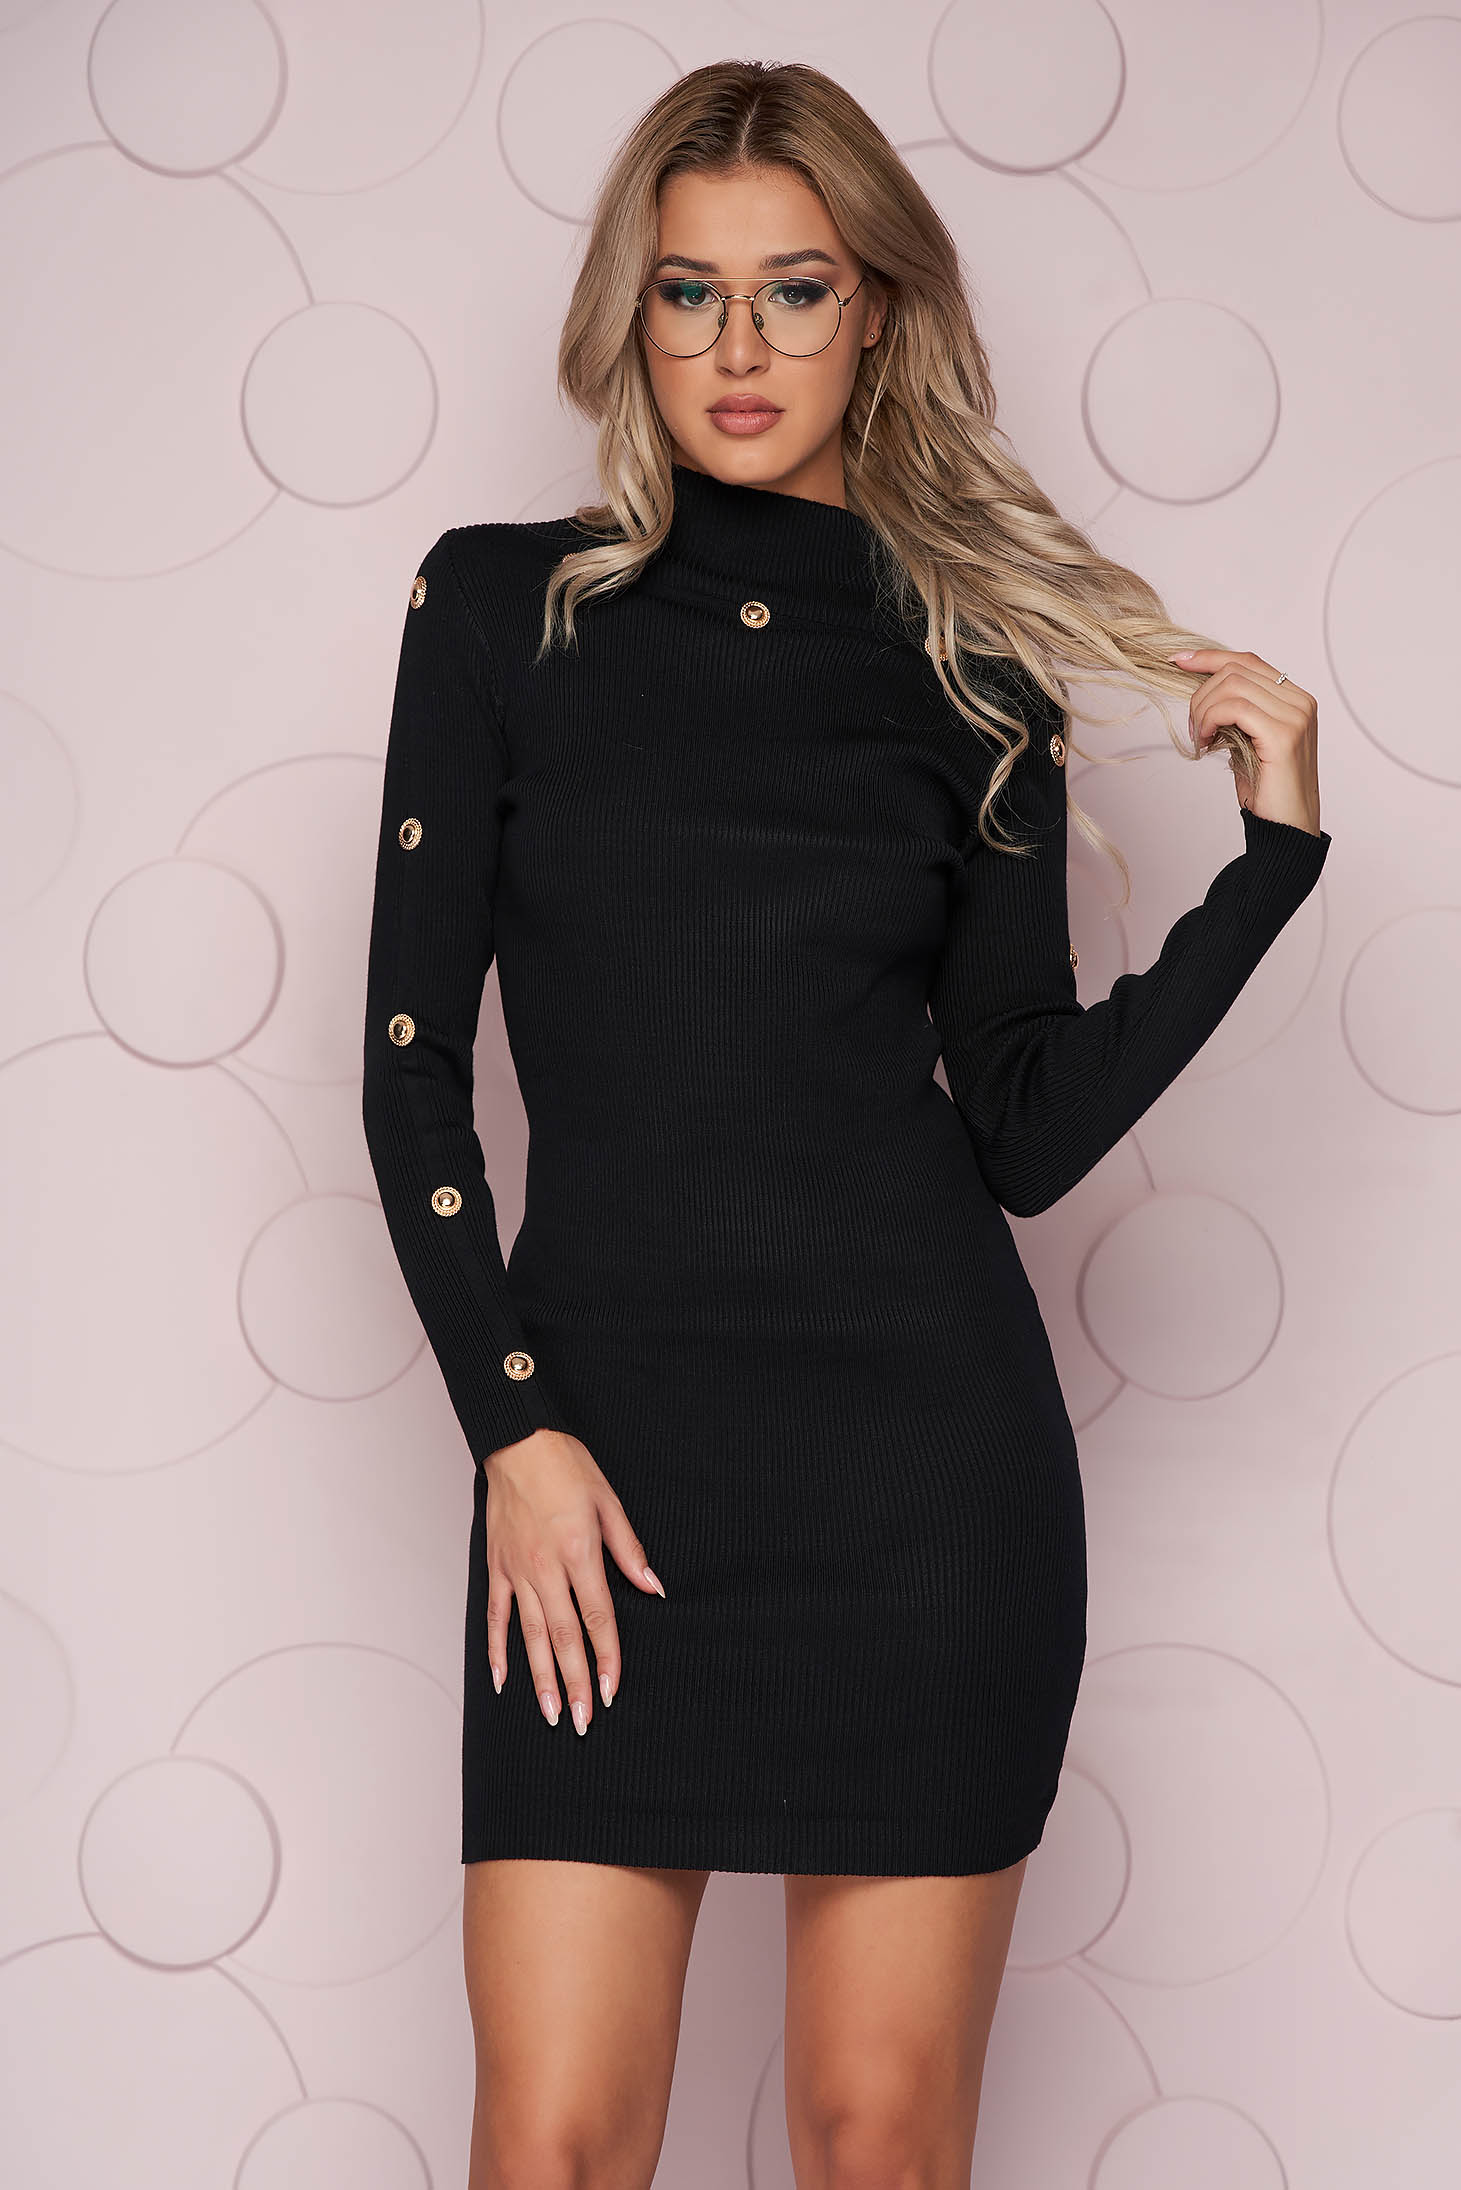 Black dress knitted fabric with tented cut short cut with button accessories